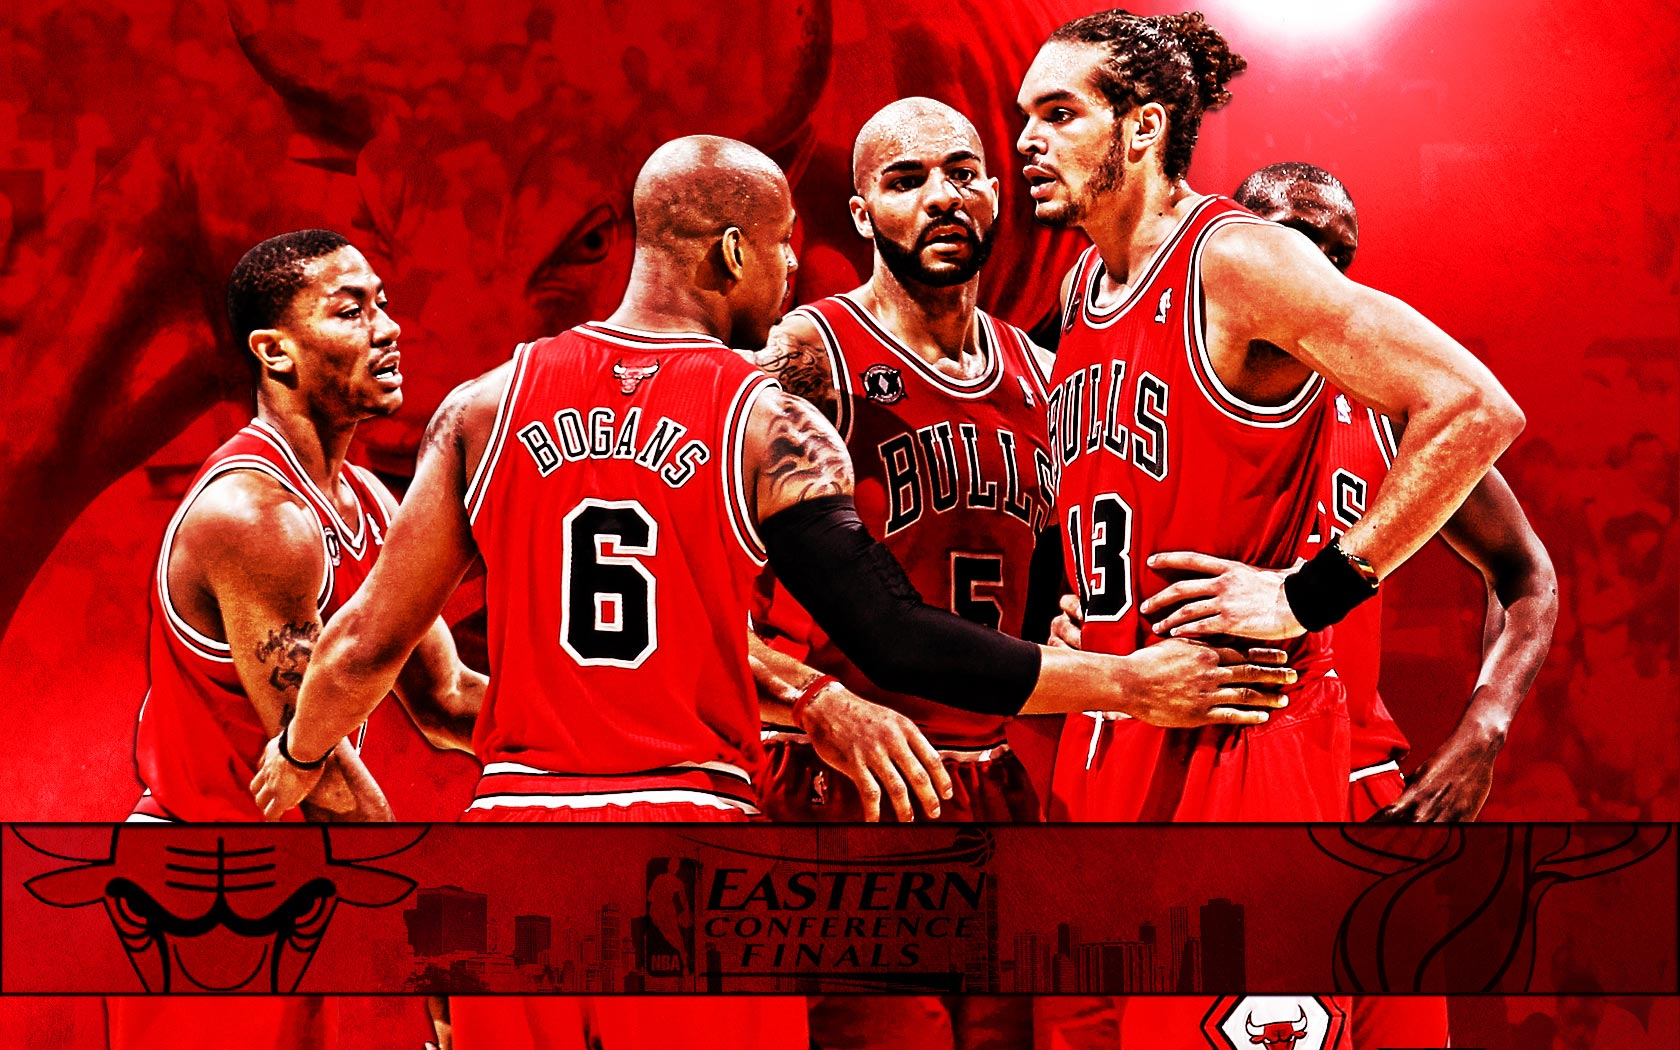 Chicago bulls1 nba conference finals widescreen wallpaper free chicago bulls wallpapers voltagebd Image collections